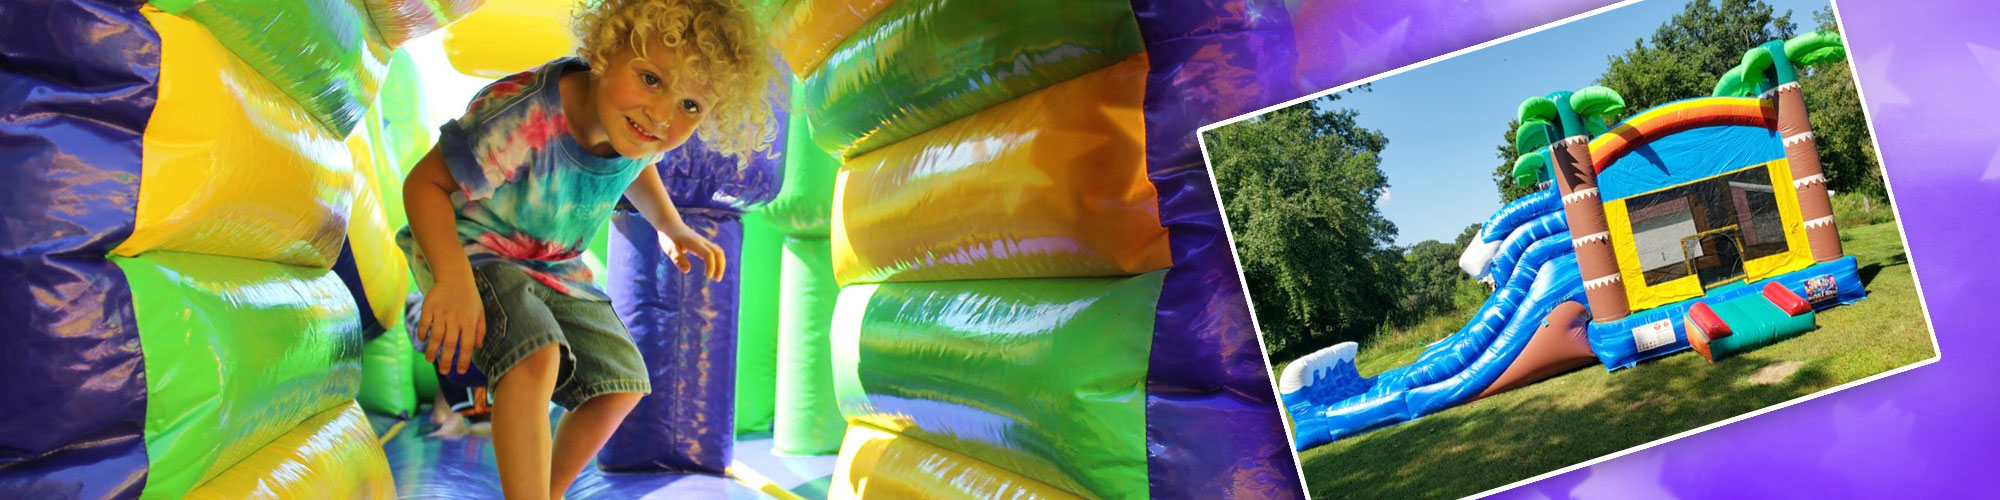 Minneapolis Bounce House Rentals